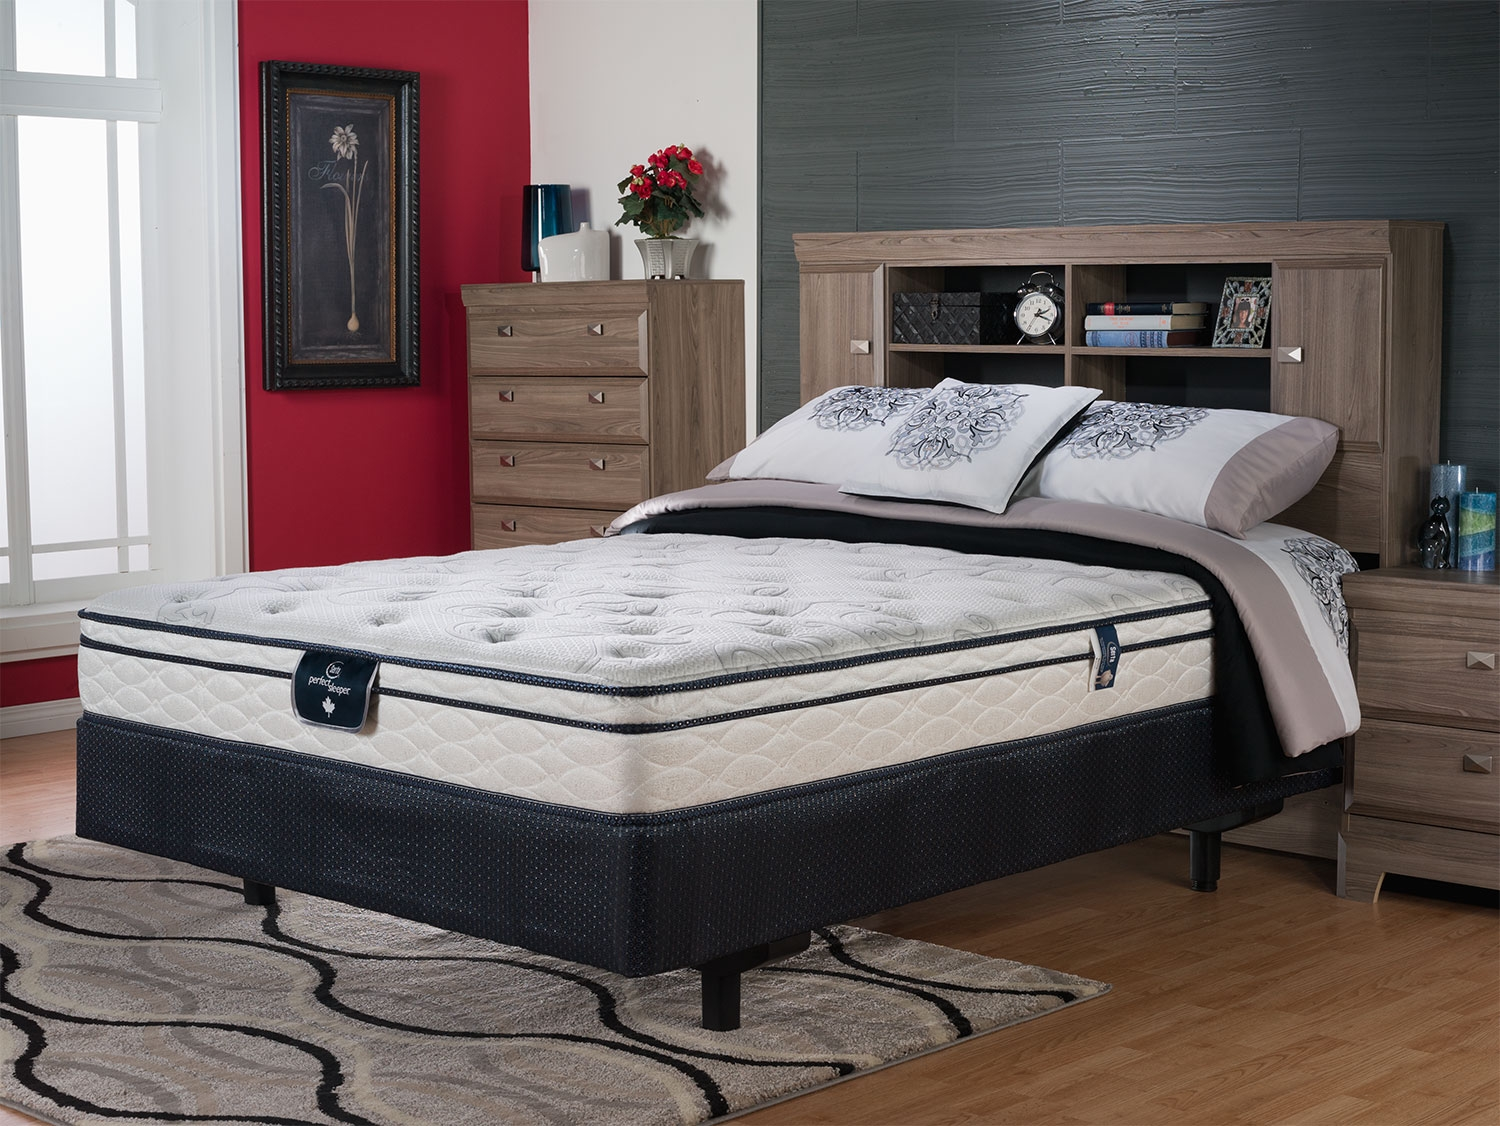 Serta Perfect Sleeper Benning Euro Top Firm Queen Mattress Set On Wooden Floor With Rug Plus Dresser For Bedroom Decor Ideas